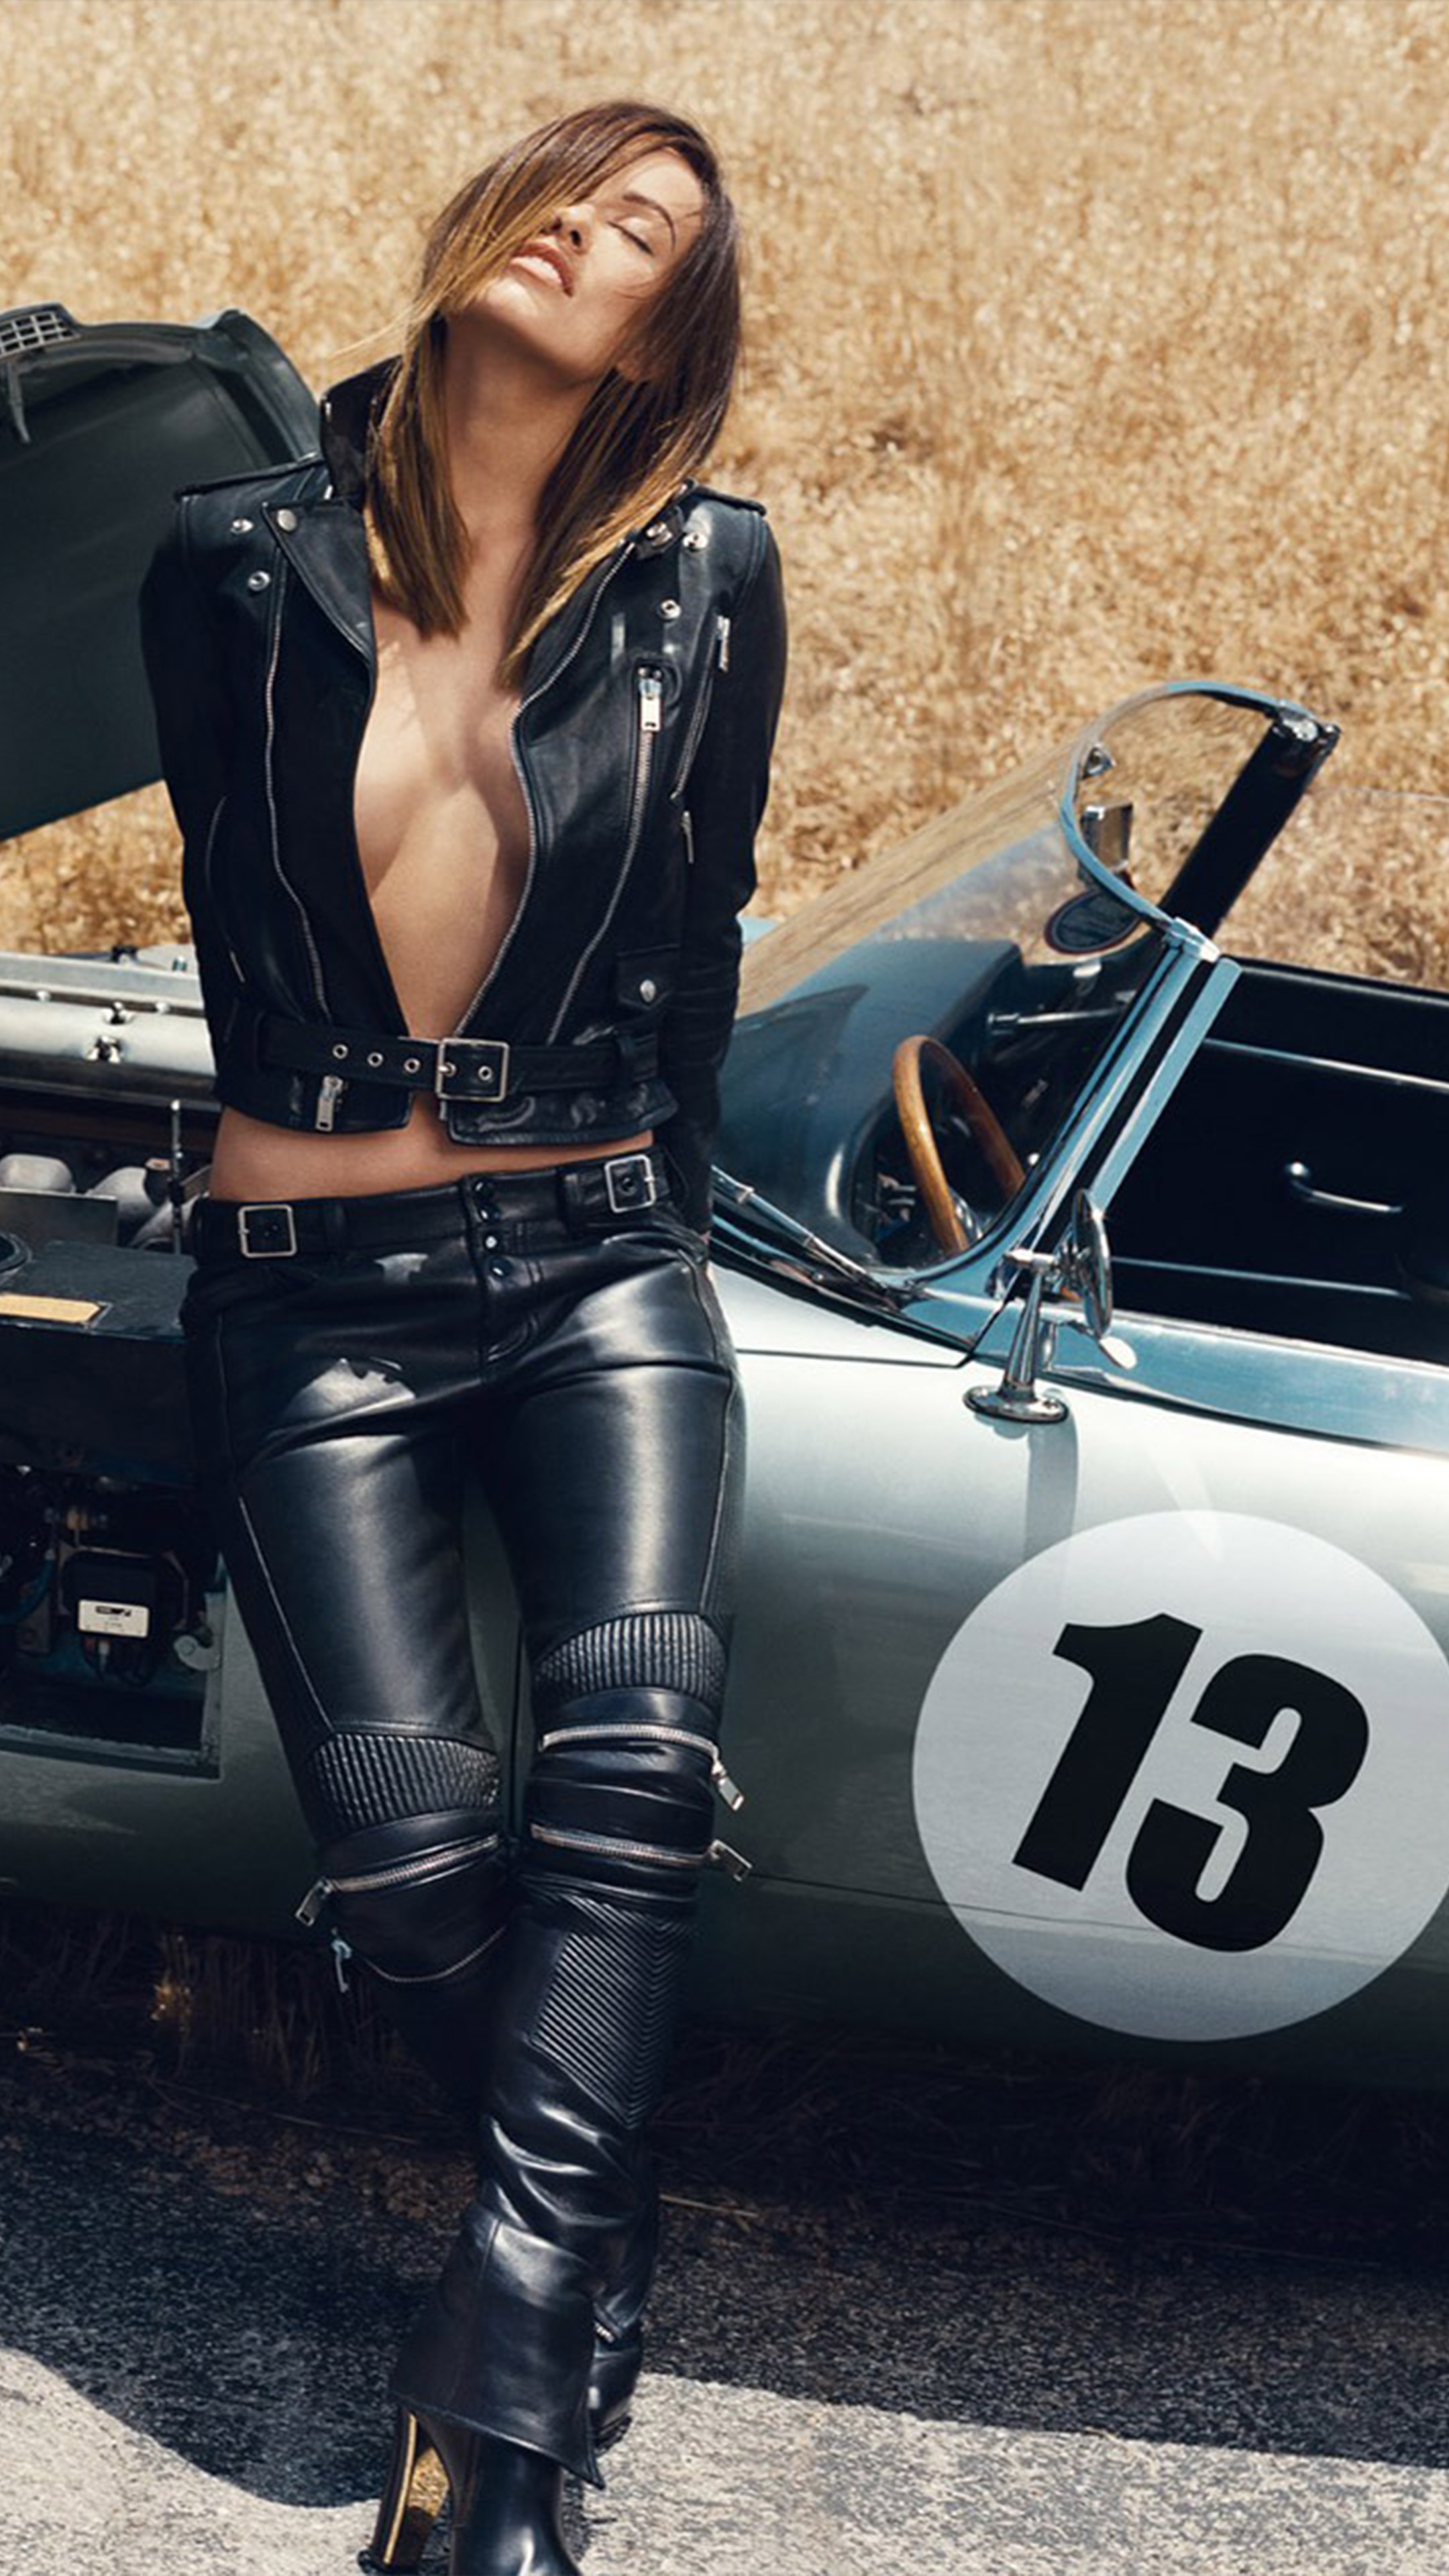 Download Olivia Wilde Hot Car Photoshoot Free Pure 4k Ultra